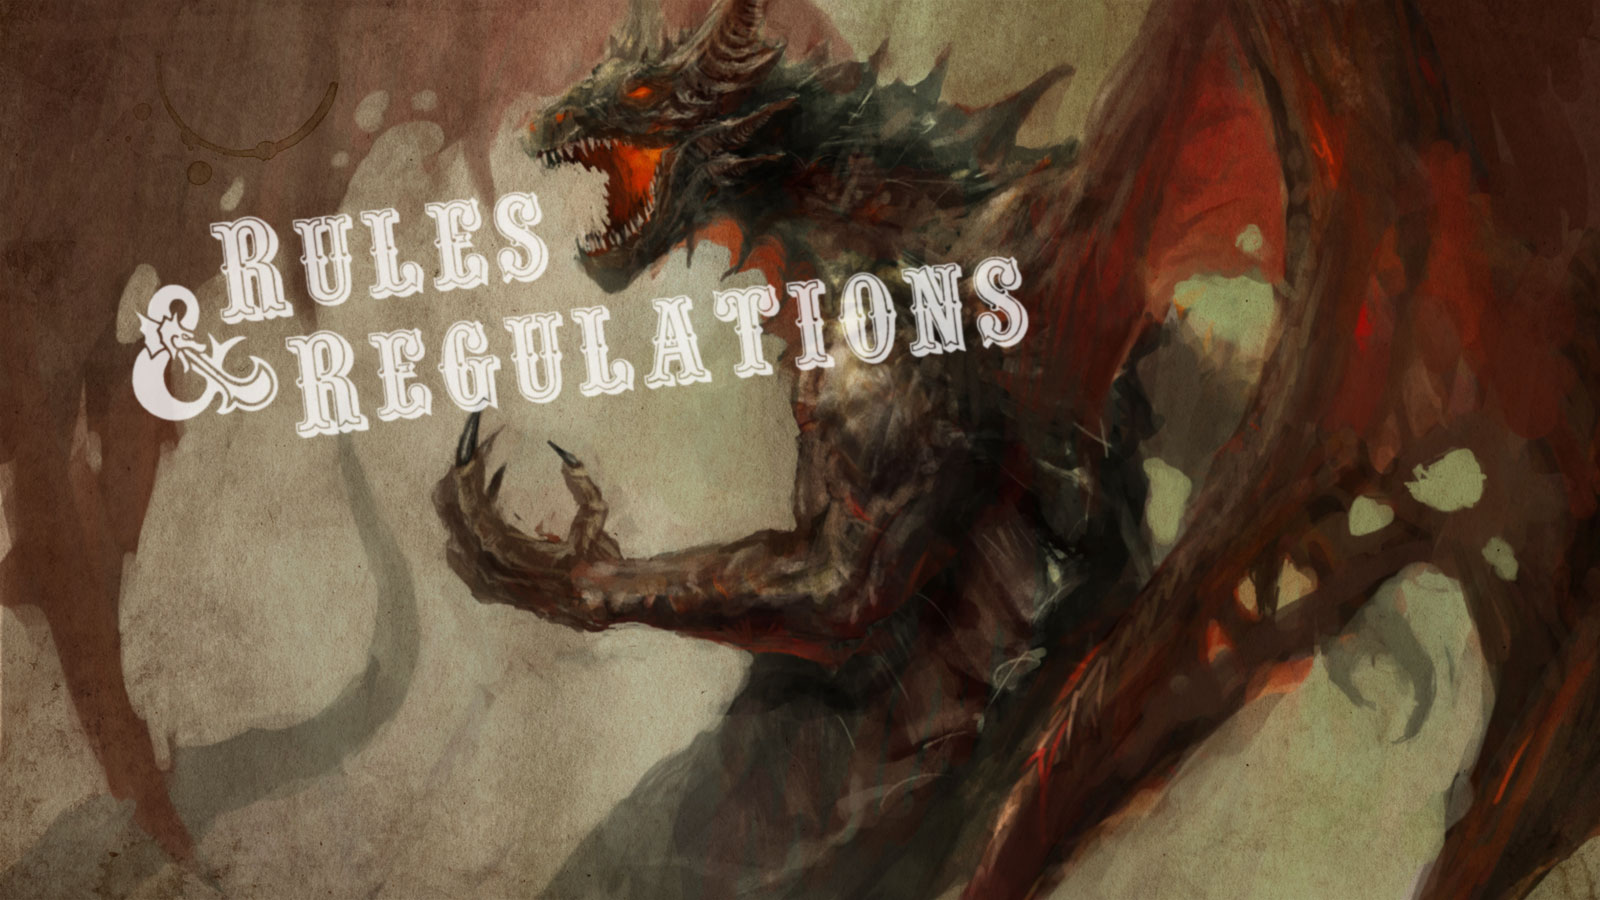 Rules_and_Regulations.jpg